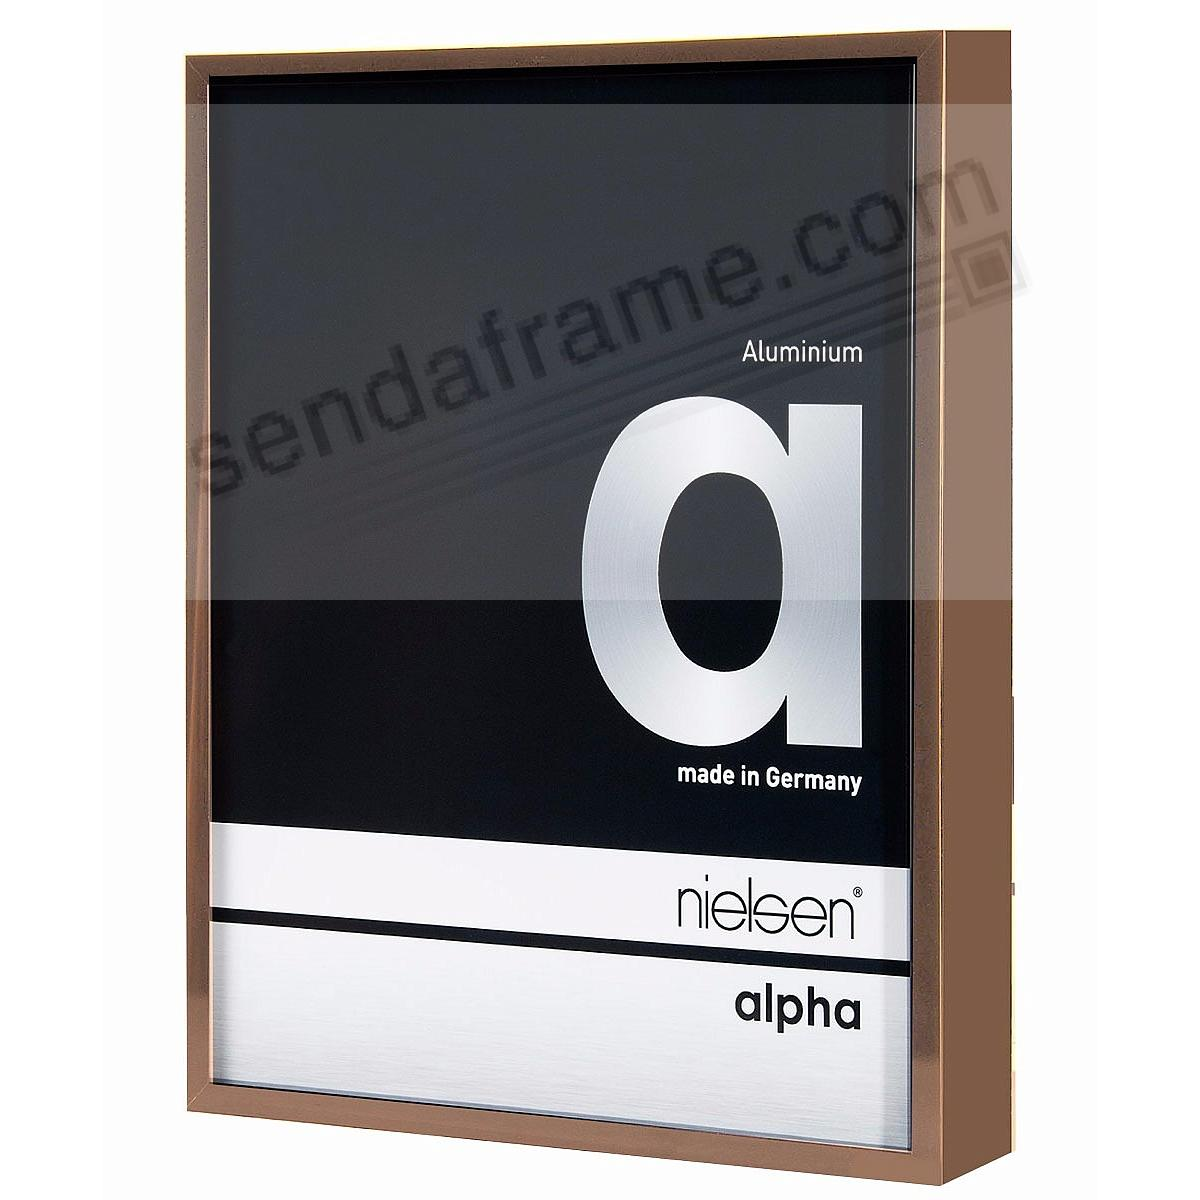 ALPHA Metallic Brushed-Bronze 8x10 frame by Nielsen®